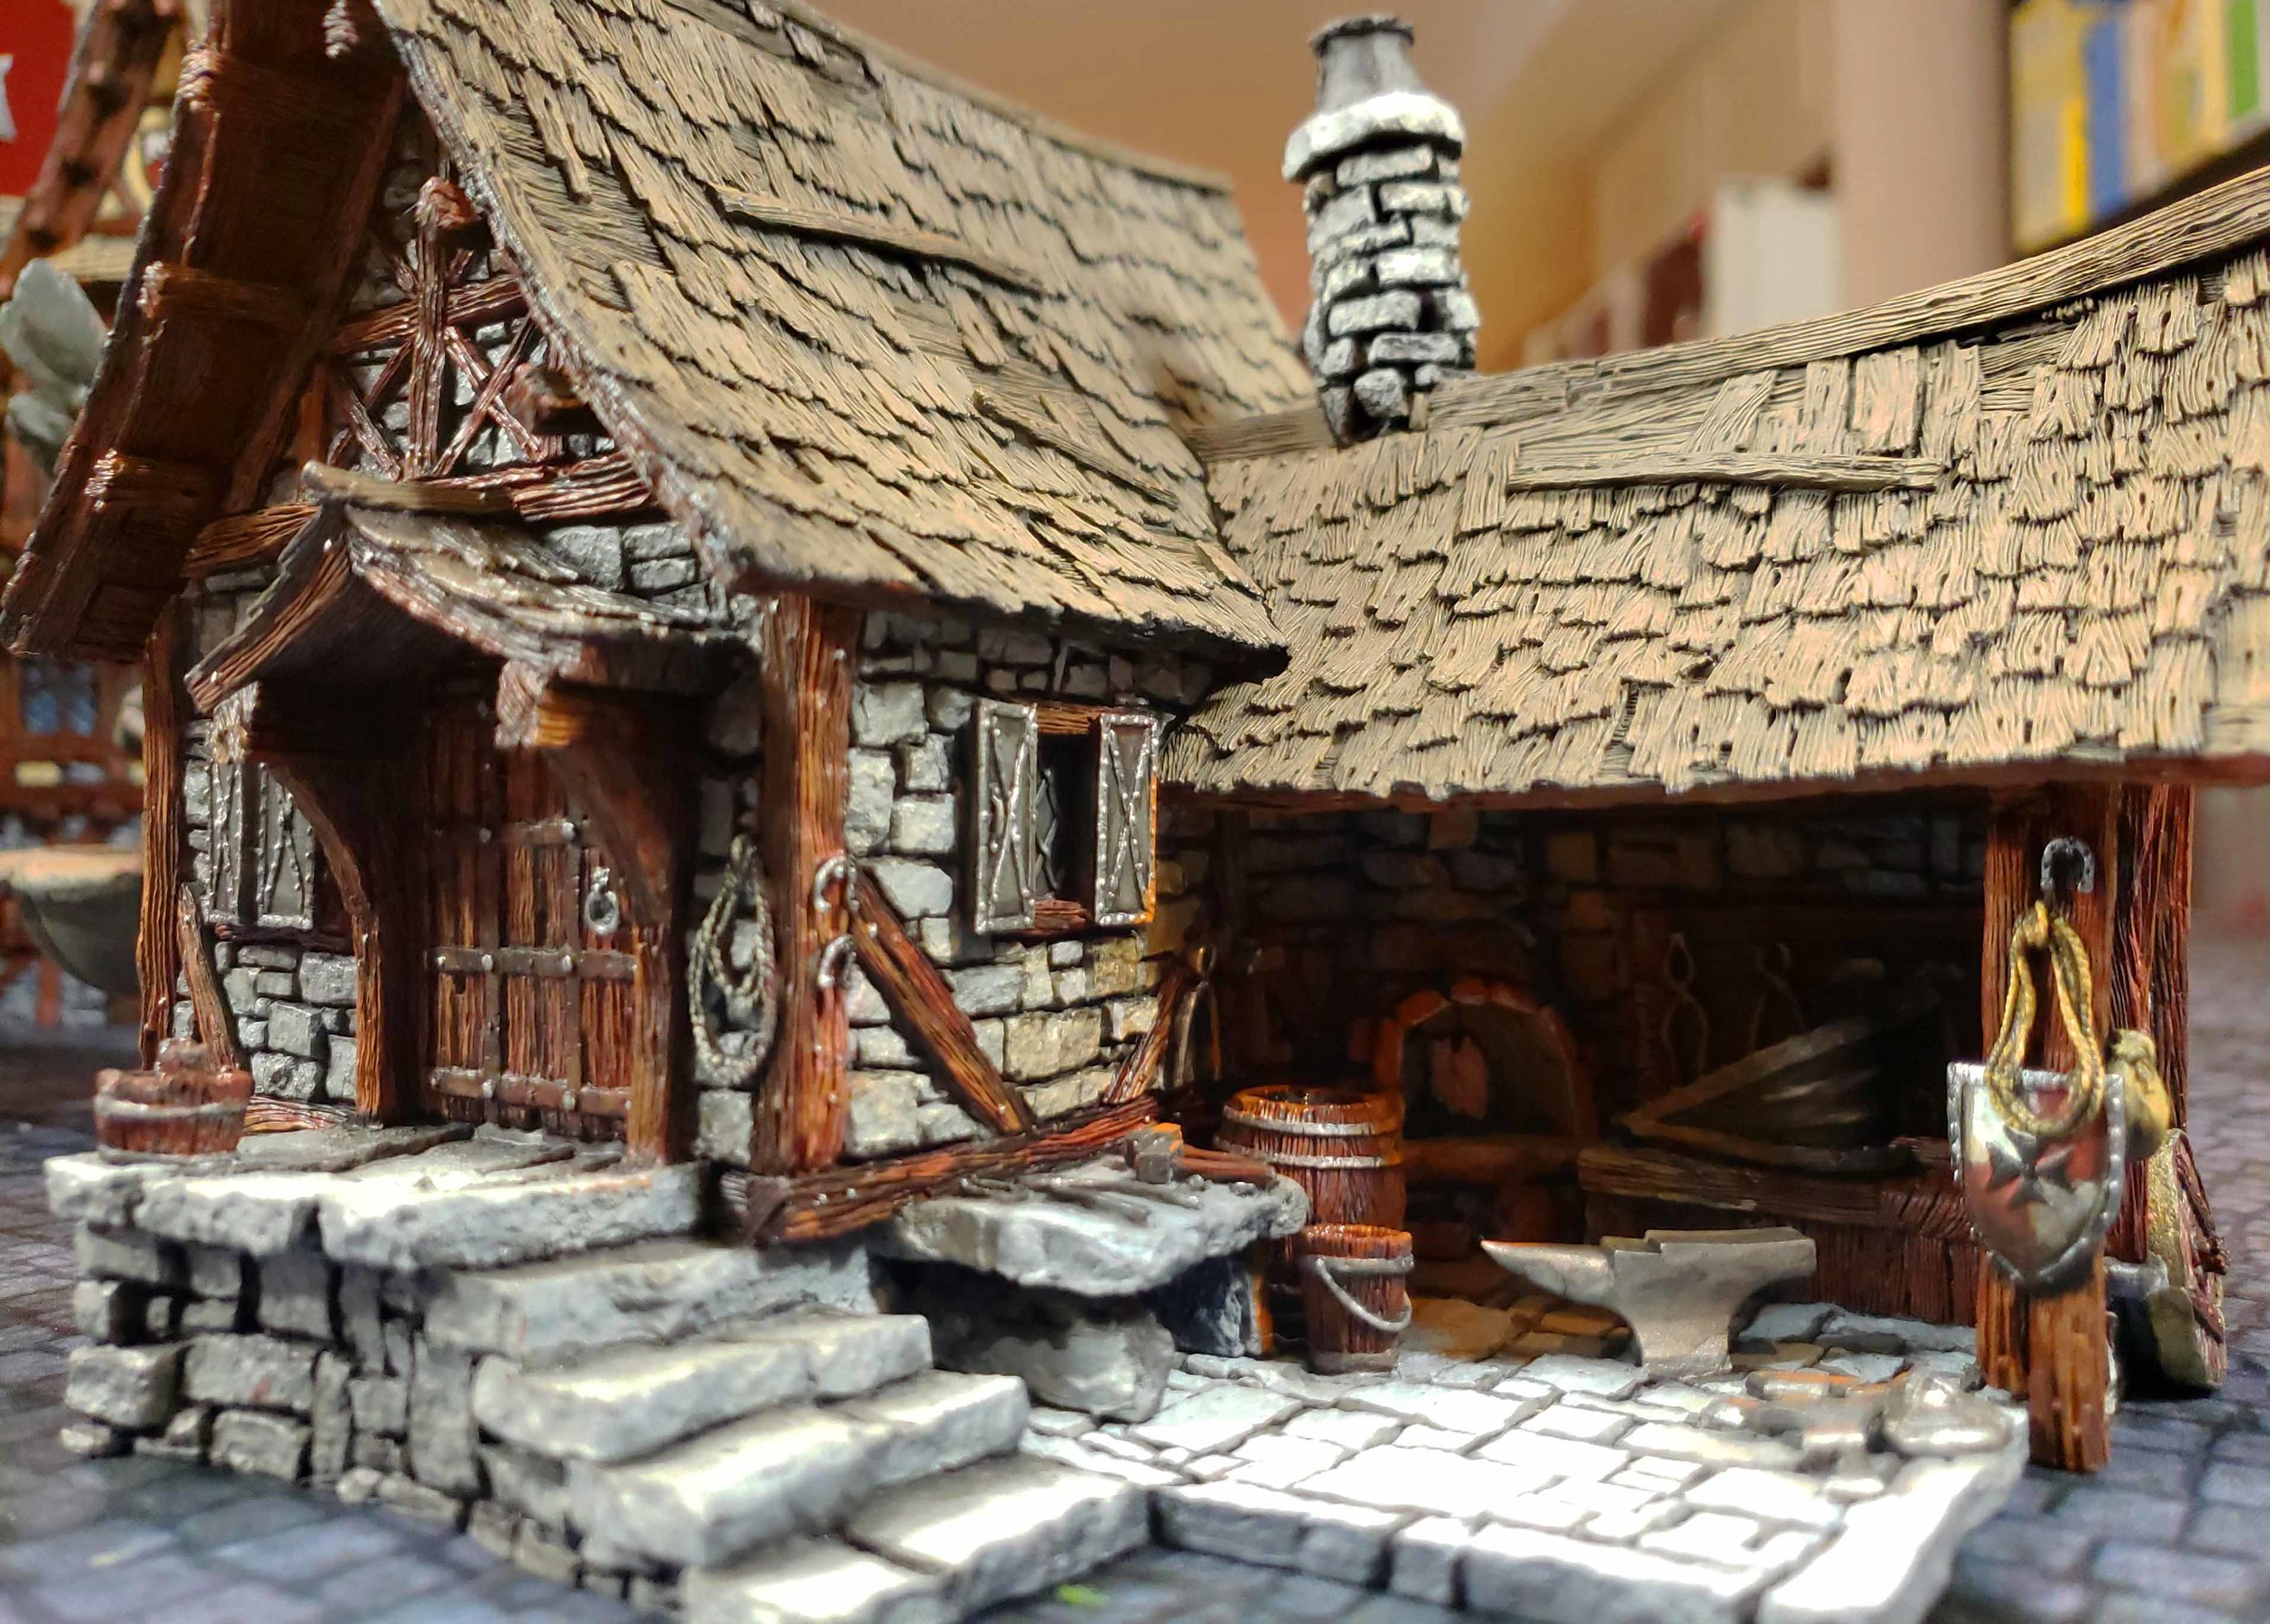 The Black Smith Forge